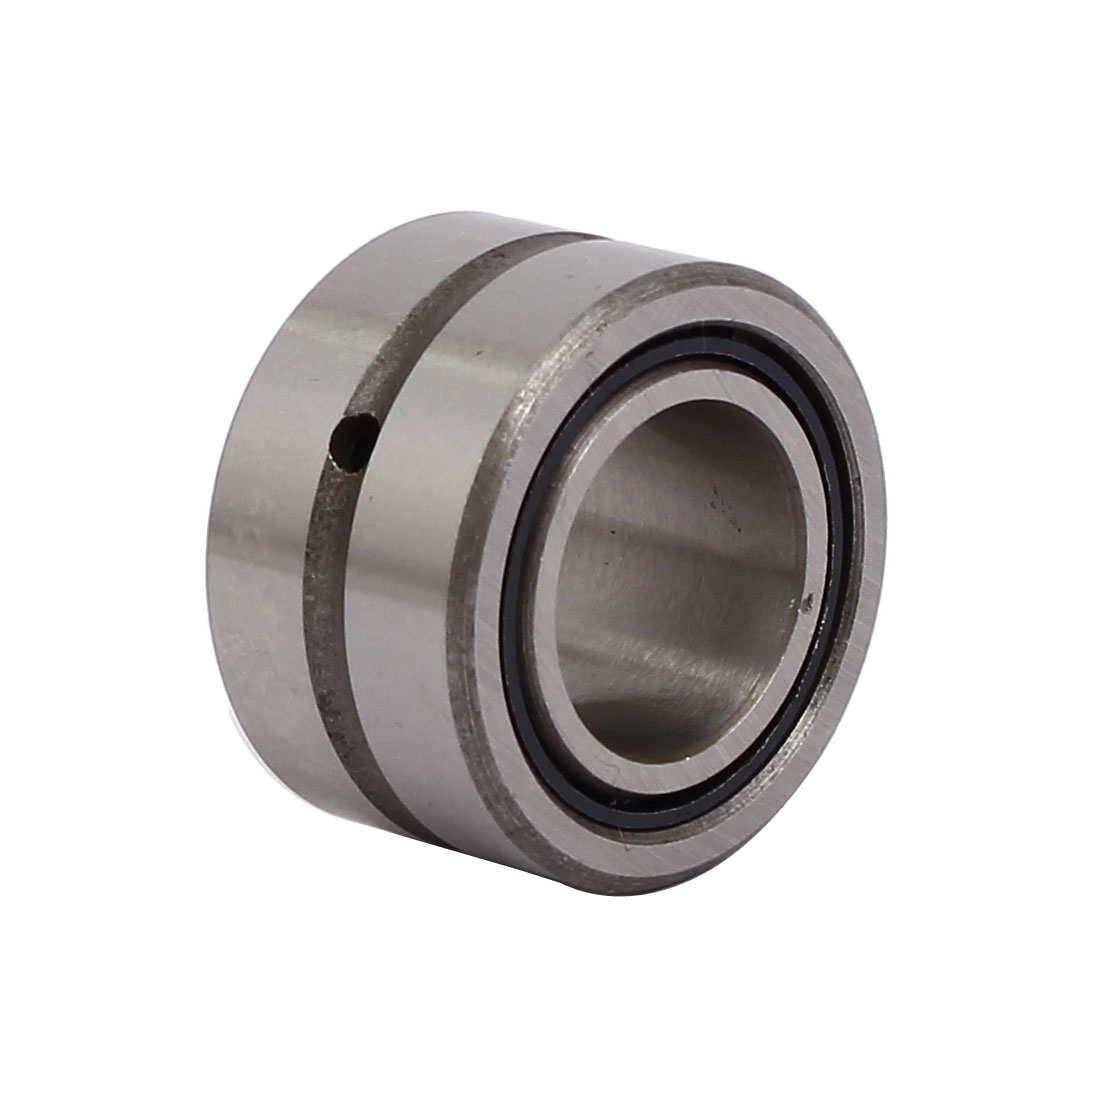 NKI15/16 27mmx15mmx16mm Full Complement Drawn Cup Needle Roller Bearing Silver Tone